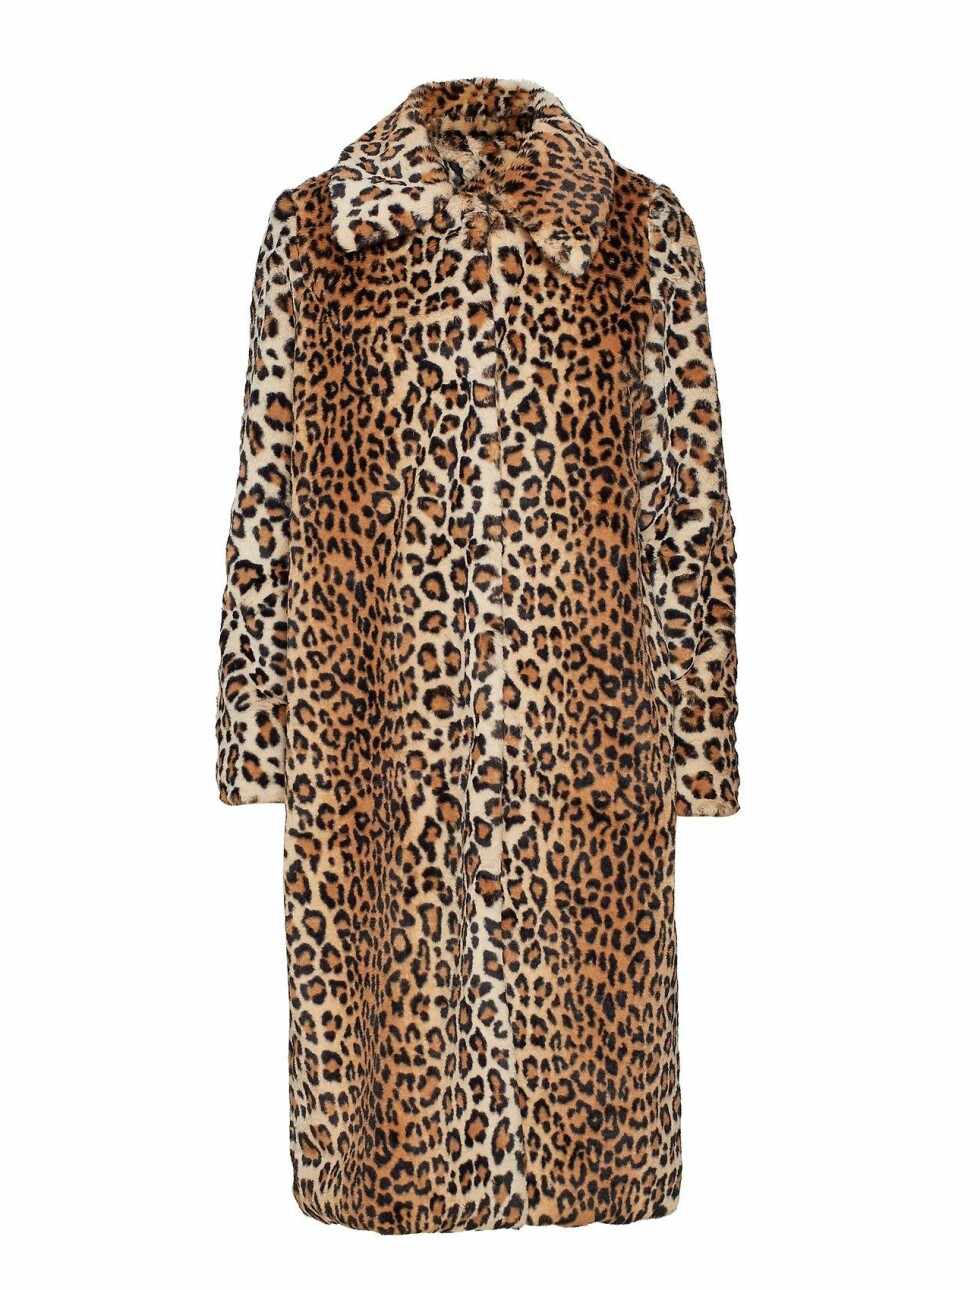 Fuskepels fra YAS |1400,-| https://www.boozt.com/no/no/yas/yasleo-faux-fur-coat_18863614/18863628?navId=69600&group=search_category&position=1000000